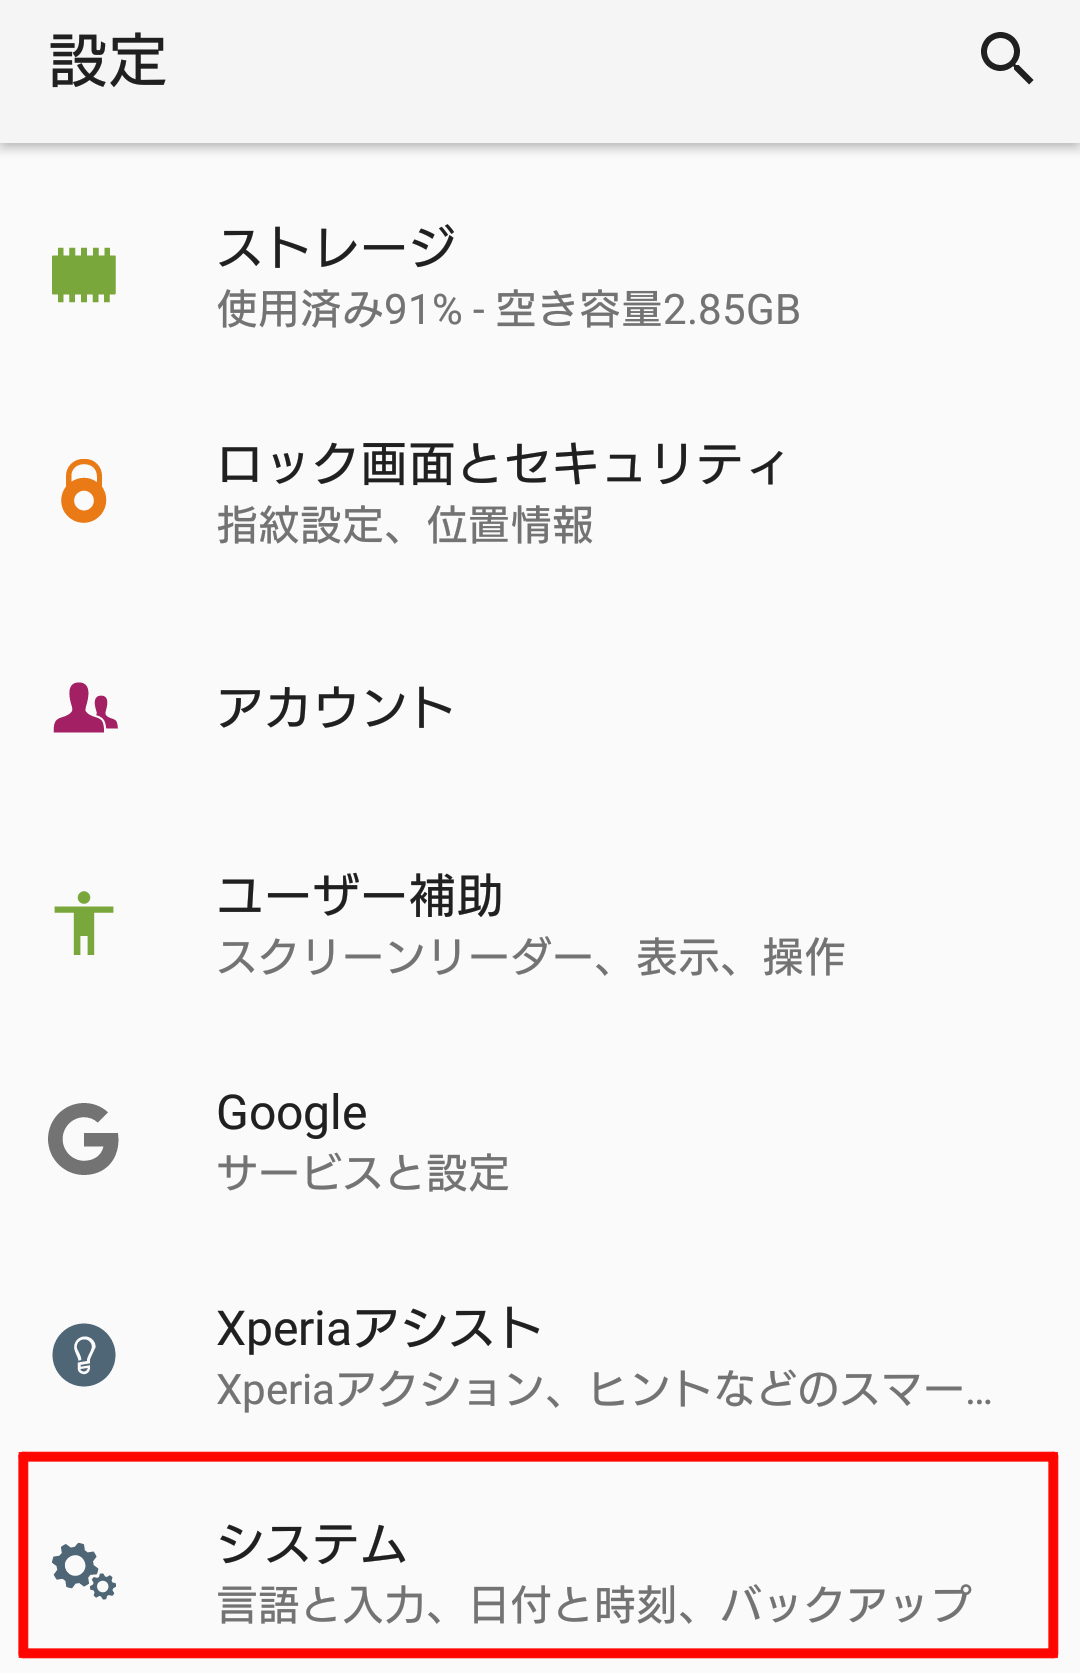 Androidのシステムを選択